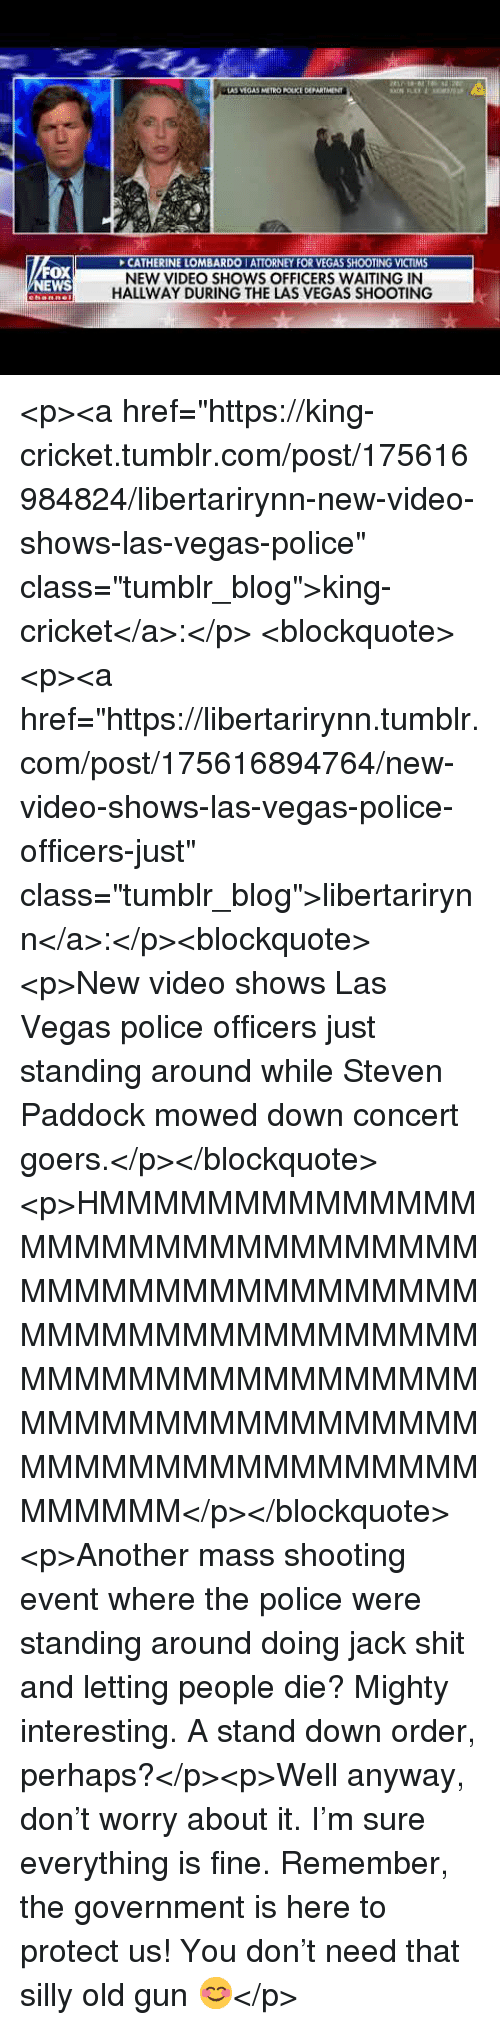 "Police, Shit, and Tumblr: AS VEGAS METRO POLICE DEPARTMENT  FOX  WS  CATHERINE LOMBARDO I ATTORNEY FOR VEGAS SHOOTING VICTIMS  NEW VIDEO SHOWS OFFICERS WAITING IN  HALLWAY DURING THE LAS VEGAS SHOOTING <p><a href=""https://king-cricket.tumblr.com/post/175616984824/libertarirynn-new-video-shows-las-vegas-police"" class=""tumblr_blog"">king-cricket</a>:</p>  <blockquote><p><a href=""https://libertarirynn.tumblr.com/post/175616894764/new-video-shows-las-vegas-police-officers-just"" class=""tumblr_blog"">libertarirynn</a>:</p><blockquote><p>New video shows Las Vegas police officers just standing around while Steven Paddock mowed down concert goers.</p></blockquote> <p>HMMMMMMMMMMMMMMMMMMMMMMMMMMMMMMMMMMMMMMMMMMMMMMMMMMMMMMMMMMMMMMMMMMMMMMMMMMMMMMMMMMMMMMMMMMMMMMMMMMMMMMMMMMMMMMMMMMMMMMMMMM</p></blockquote>  <p>Another mass shooting event where the police were standing around doing jack shit and letting people die? Mighty interesting. A stand down order, perhaps?</p><p>Well anyway, don't worry about it. I'm sure everything is fine. Remember, the government is here to protect us! You don't need that silly old gun 😊</p>"